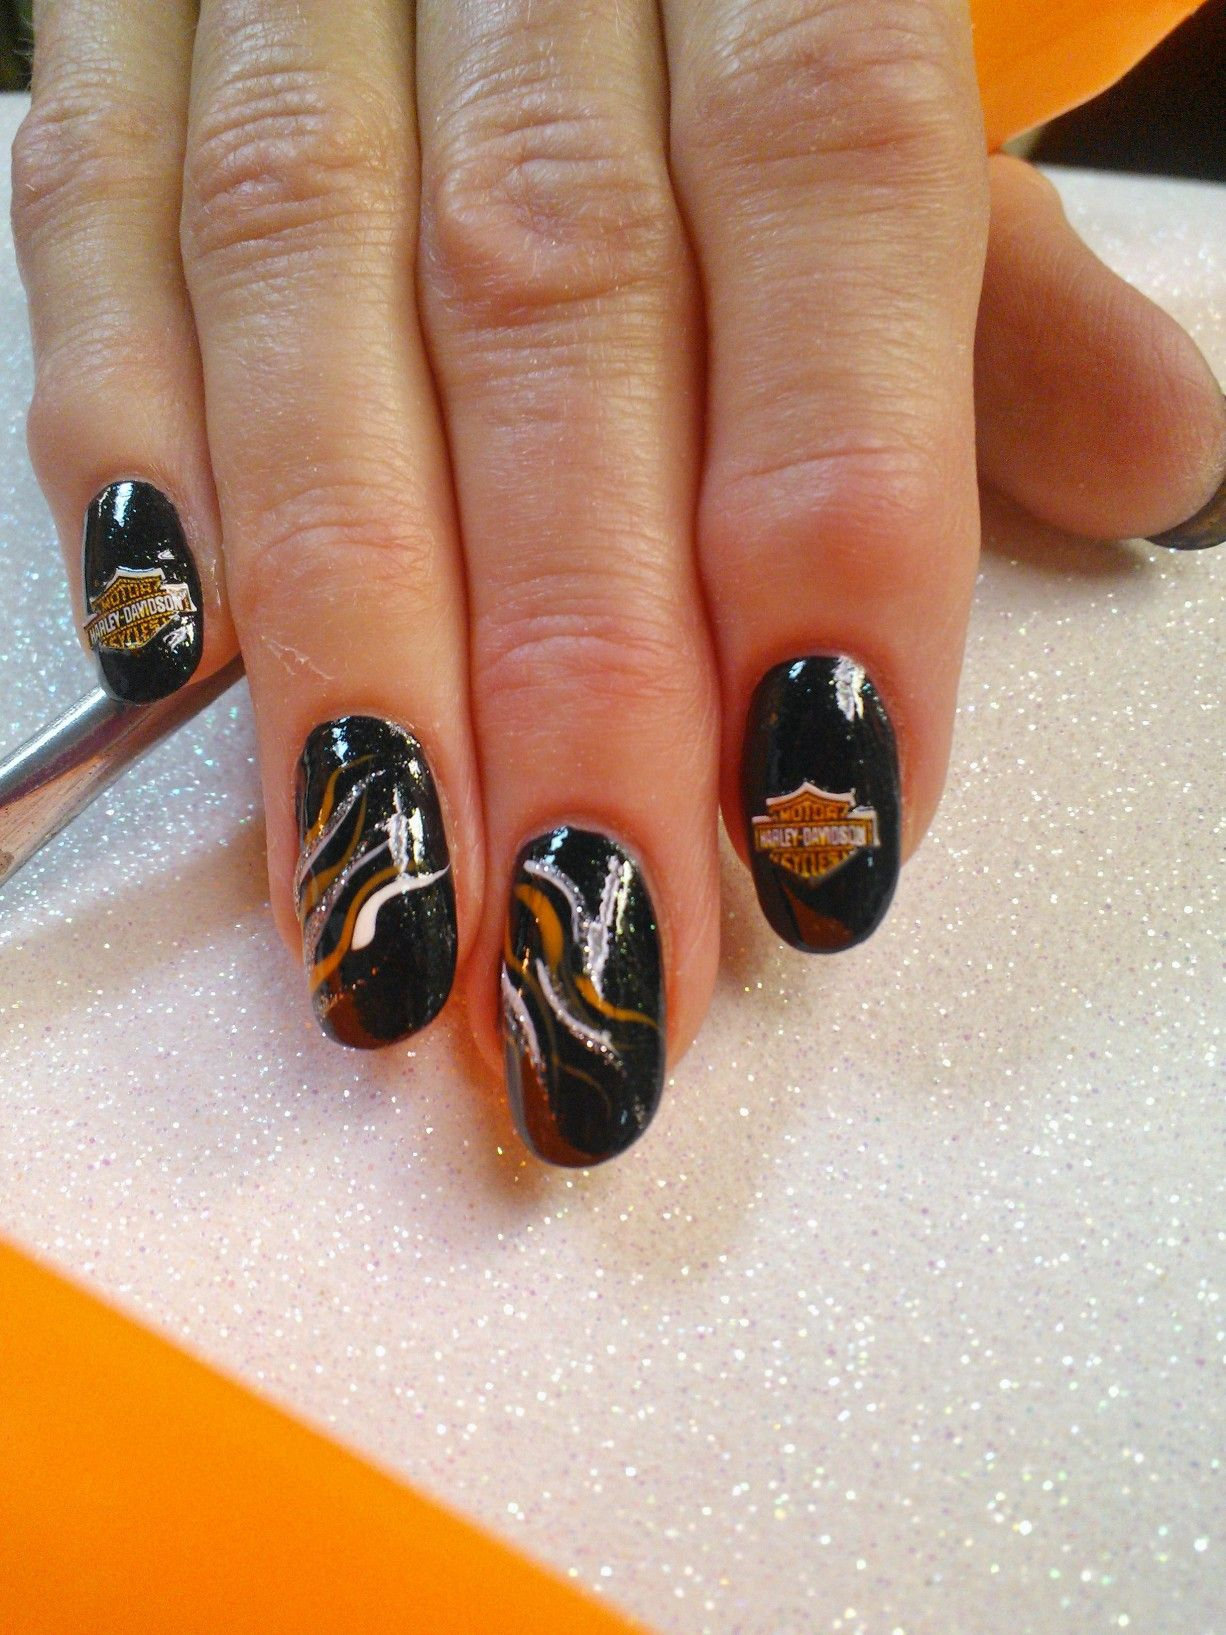 Pin By Colleen Dixson On Things I Like Most Sassy Nails Hair And Nails Nails